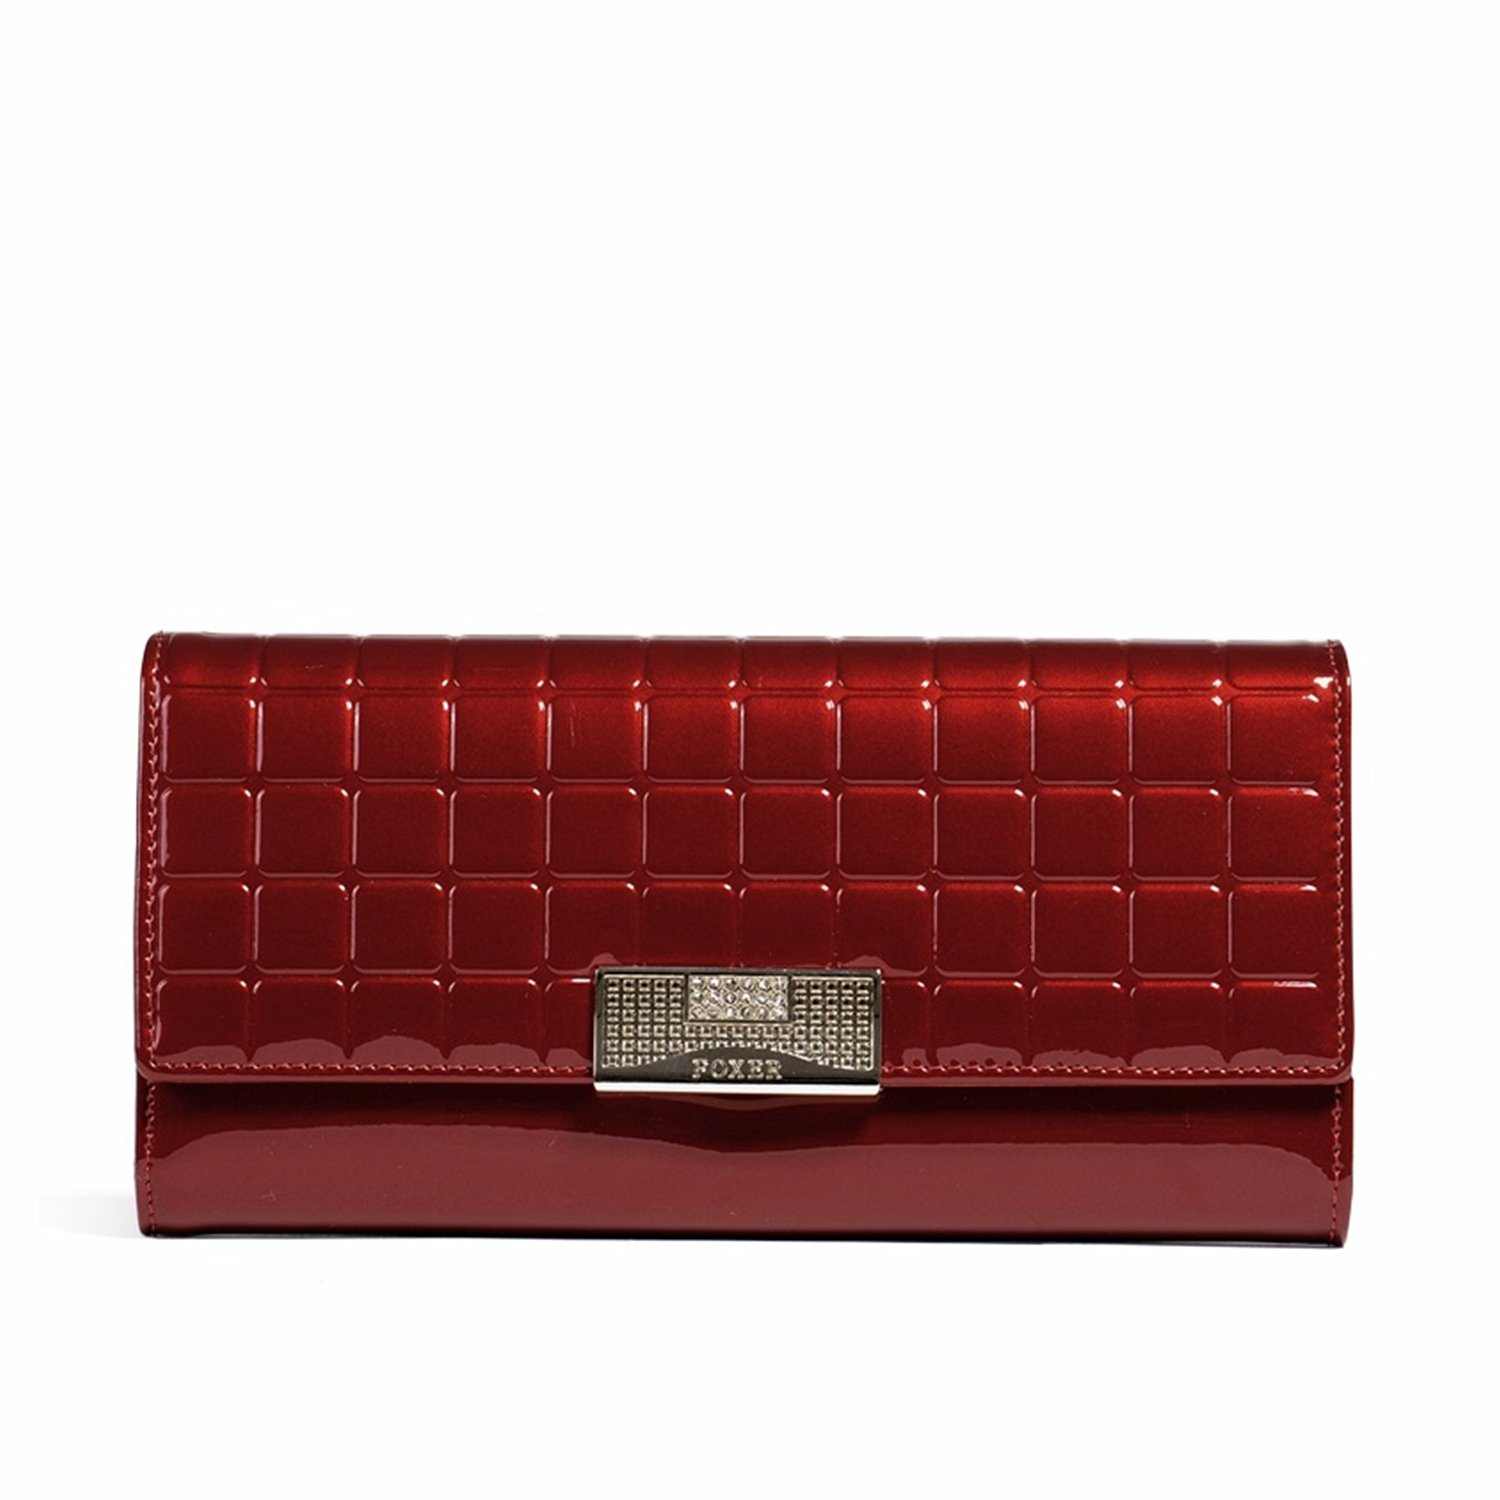 MATAGA Wallets for Women Leather Long Female Purse Lattice Bright Clutch Holder Bags for Ladies JHFX213005 Red